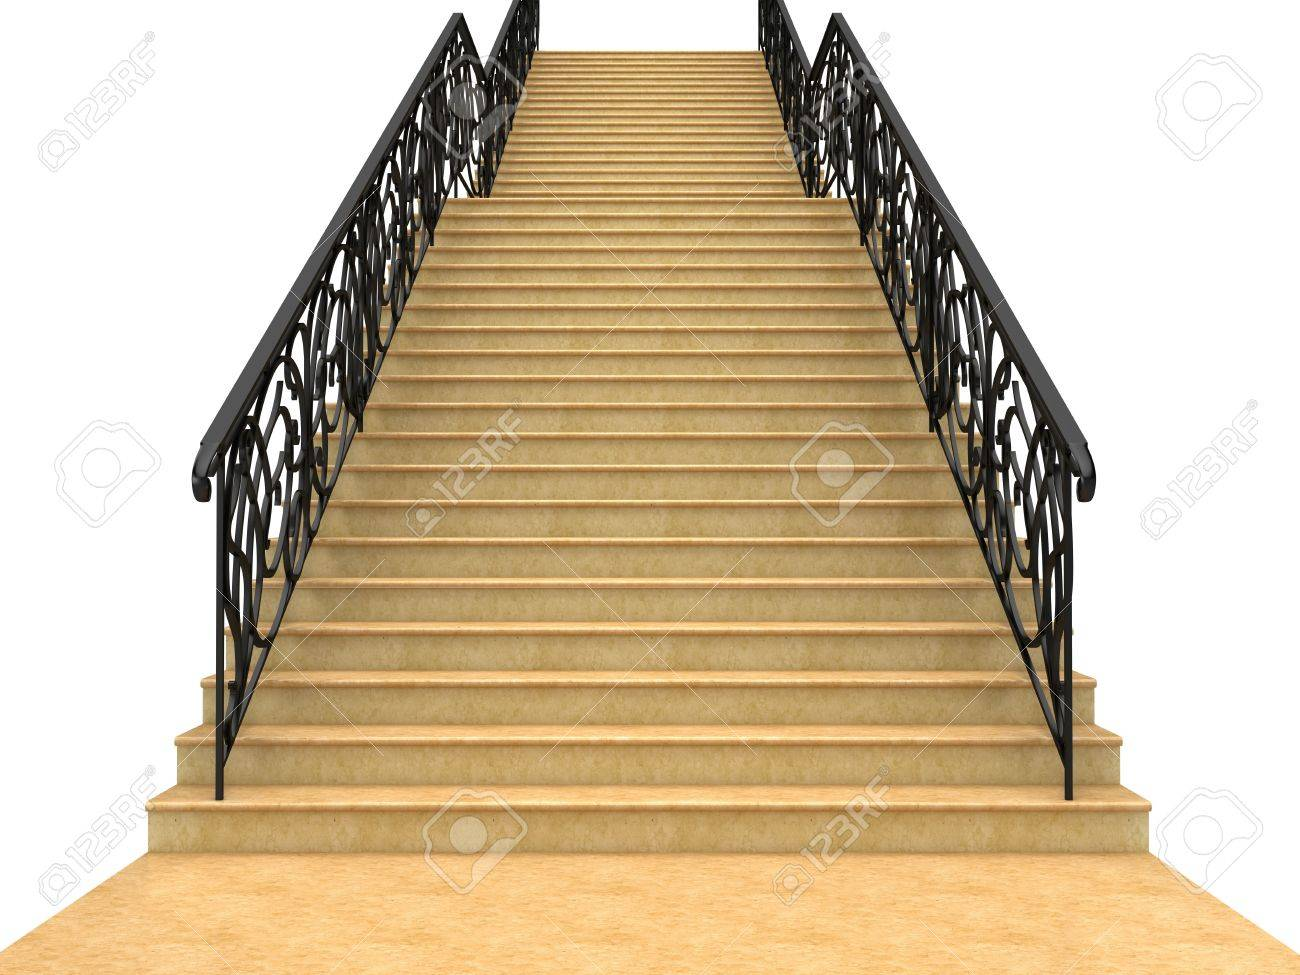 Stairs with railings leading up. Isolated on white Stock Photo - 4598738